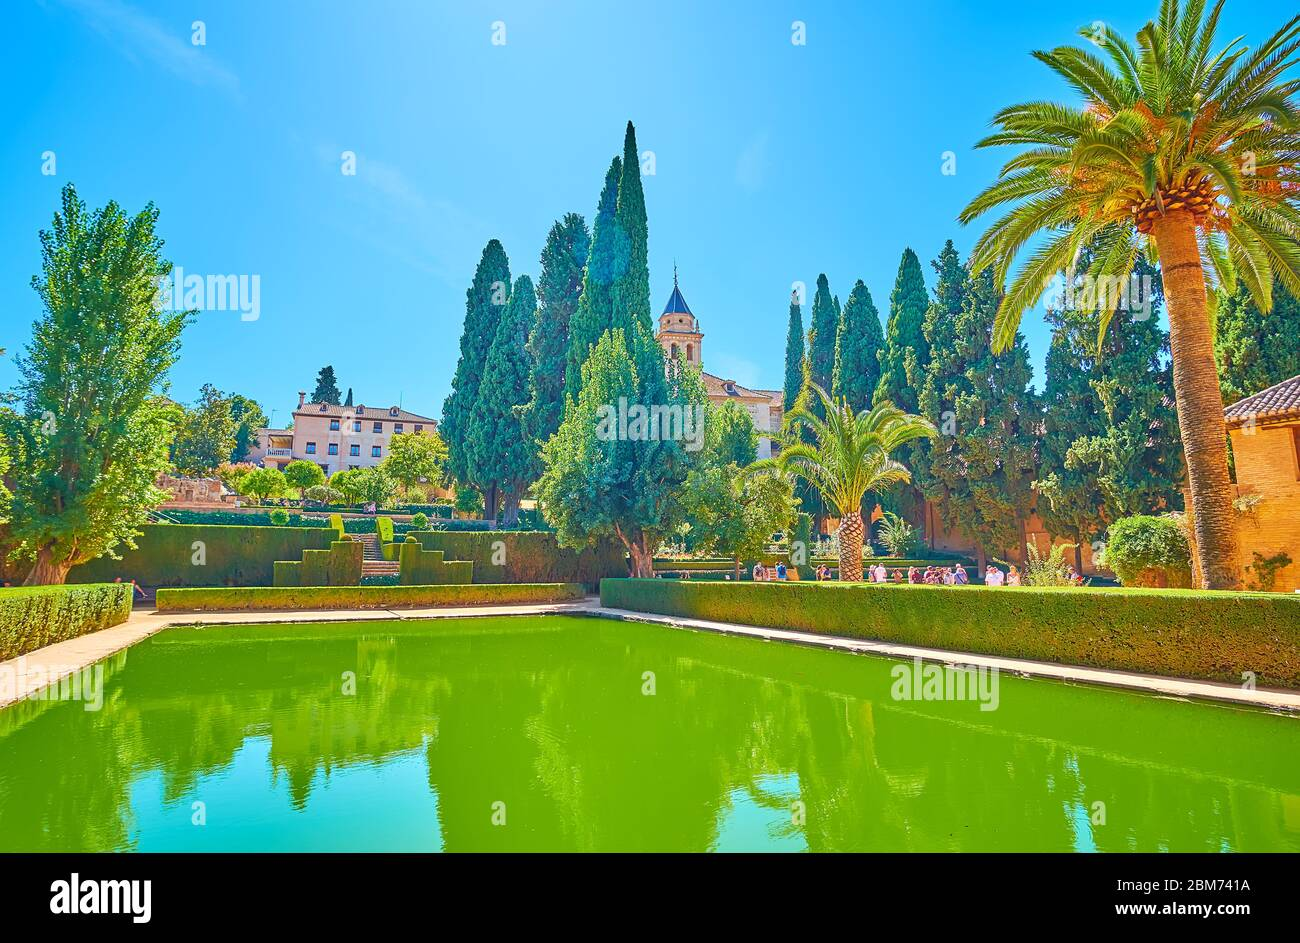 Granada Spain September 25 2019 The Pool Surrounded By Scenic Topiary Partal Garden Flower Beds And Tall Thuja Trees Alhambra On September 25 Stock Photo Alamy